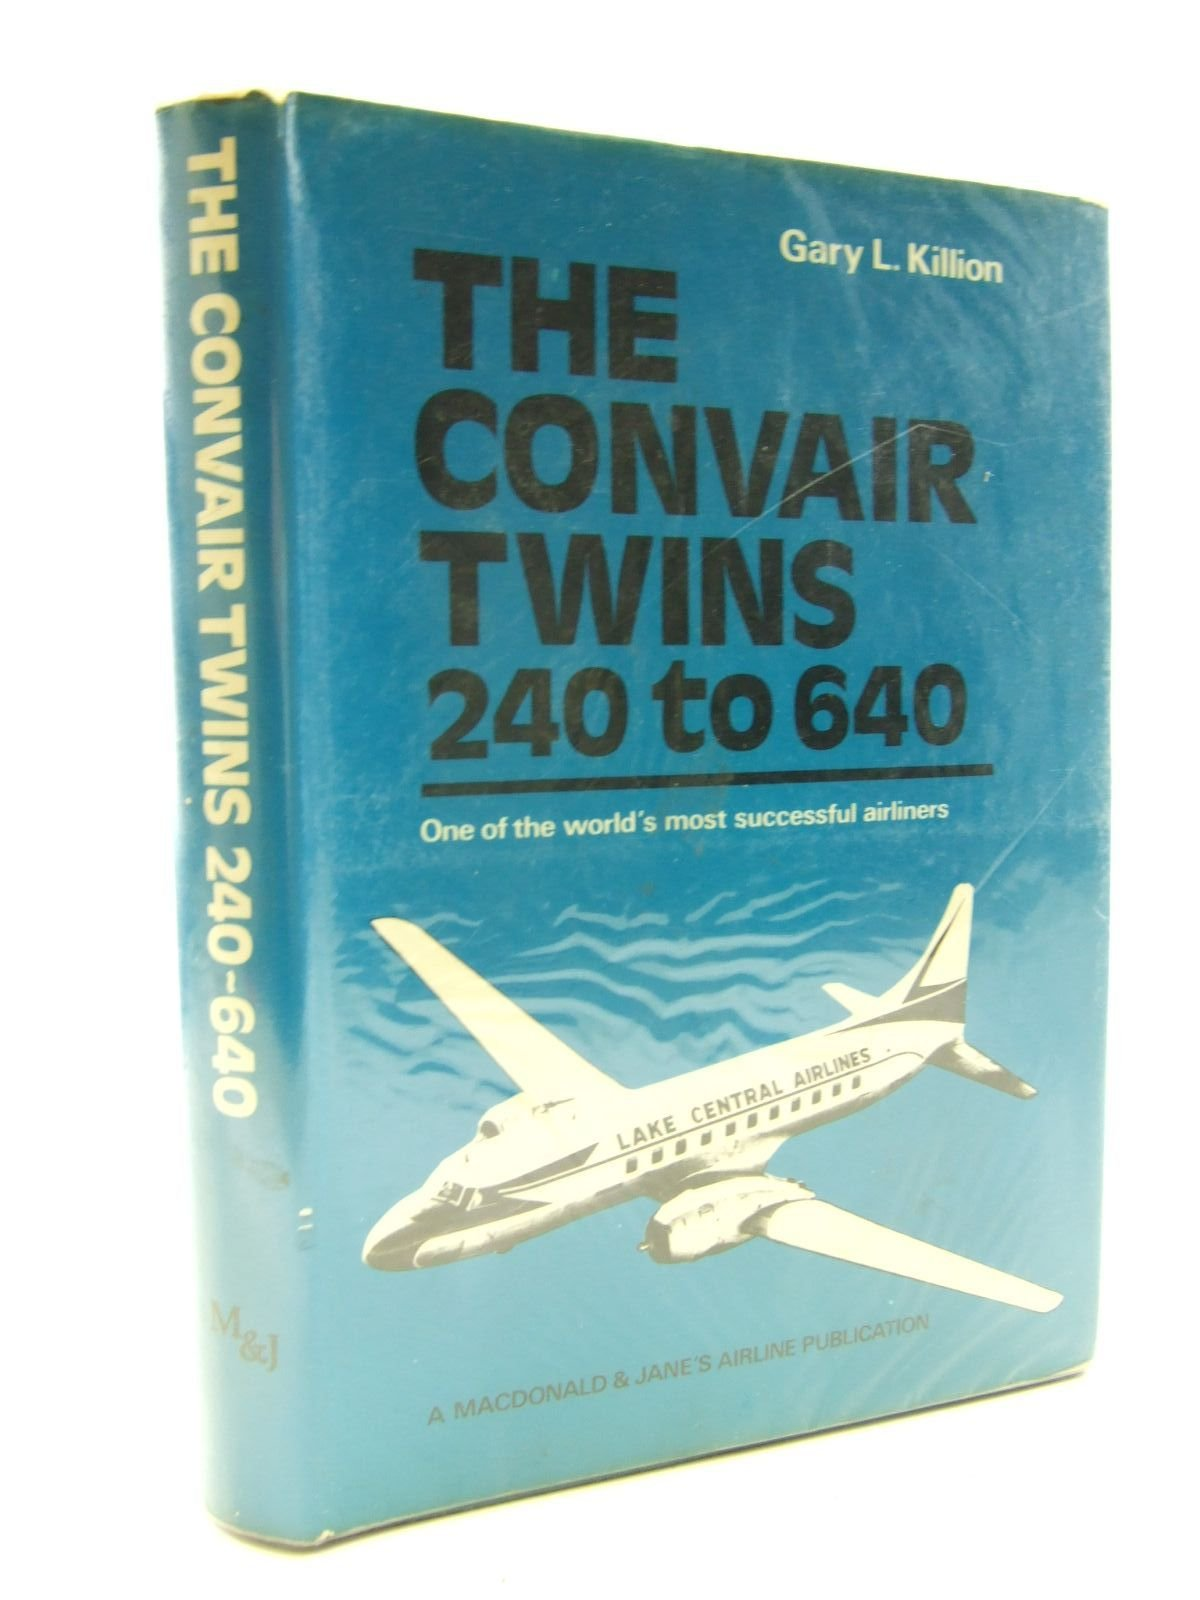 The Convair twins, 240 to 640: One of the World's Most Successful  Airliners: Gary L Killion: 9780354012409: Amazon.com: Books